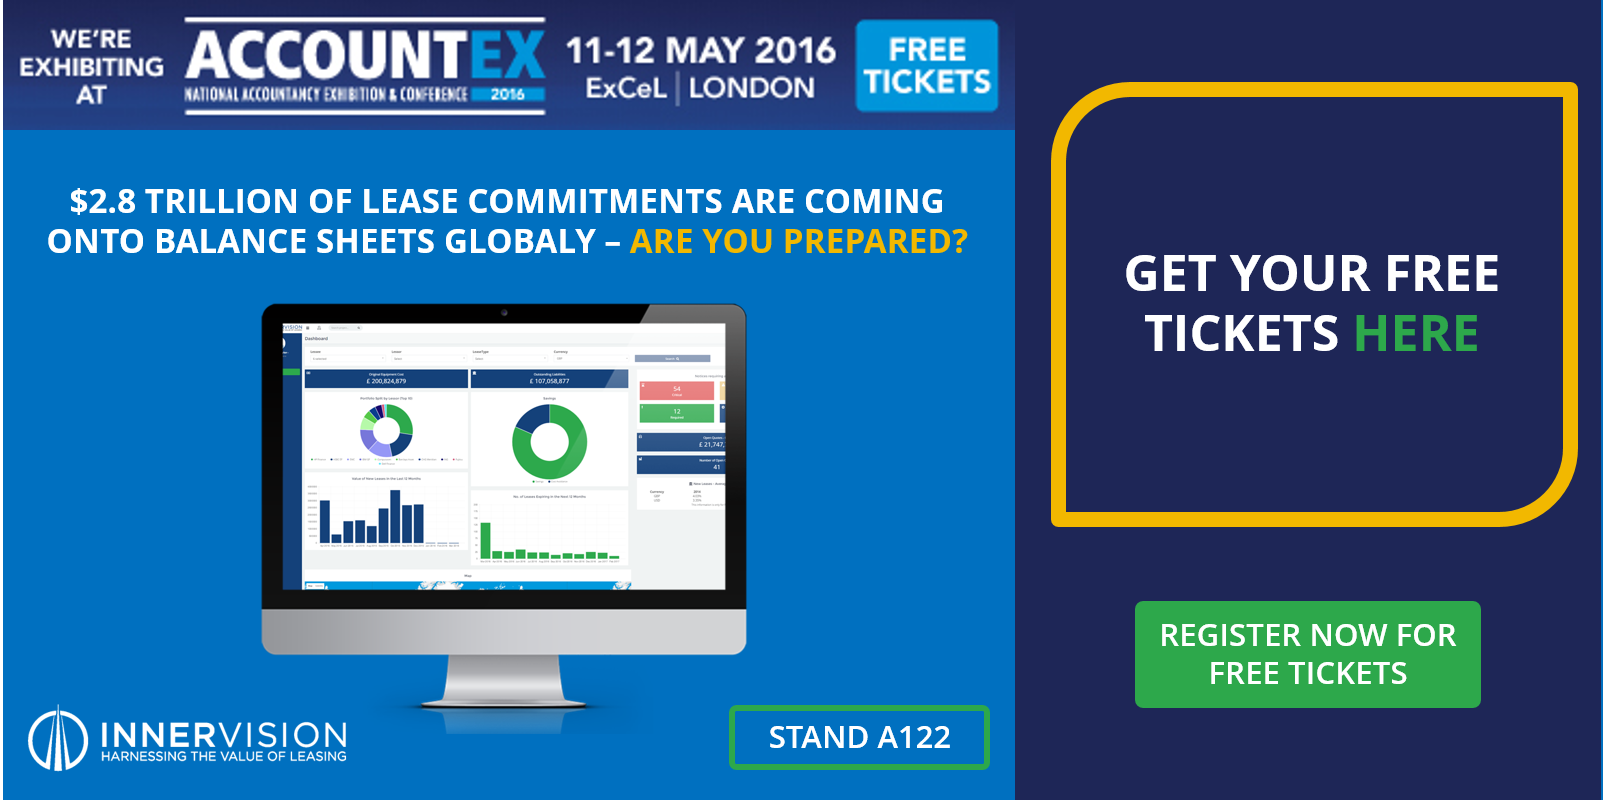 Accountex_Get_Your_Free_Tickets_Here.png